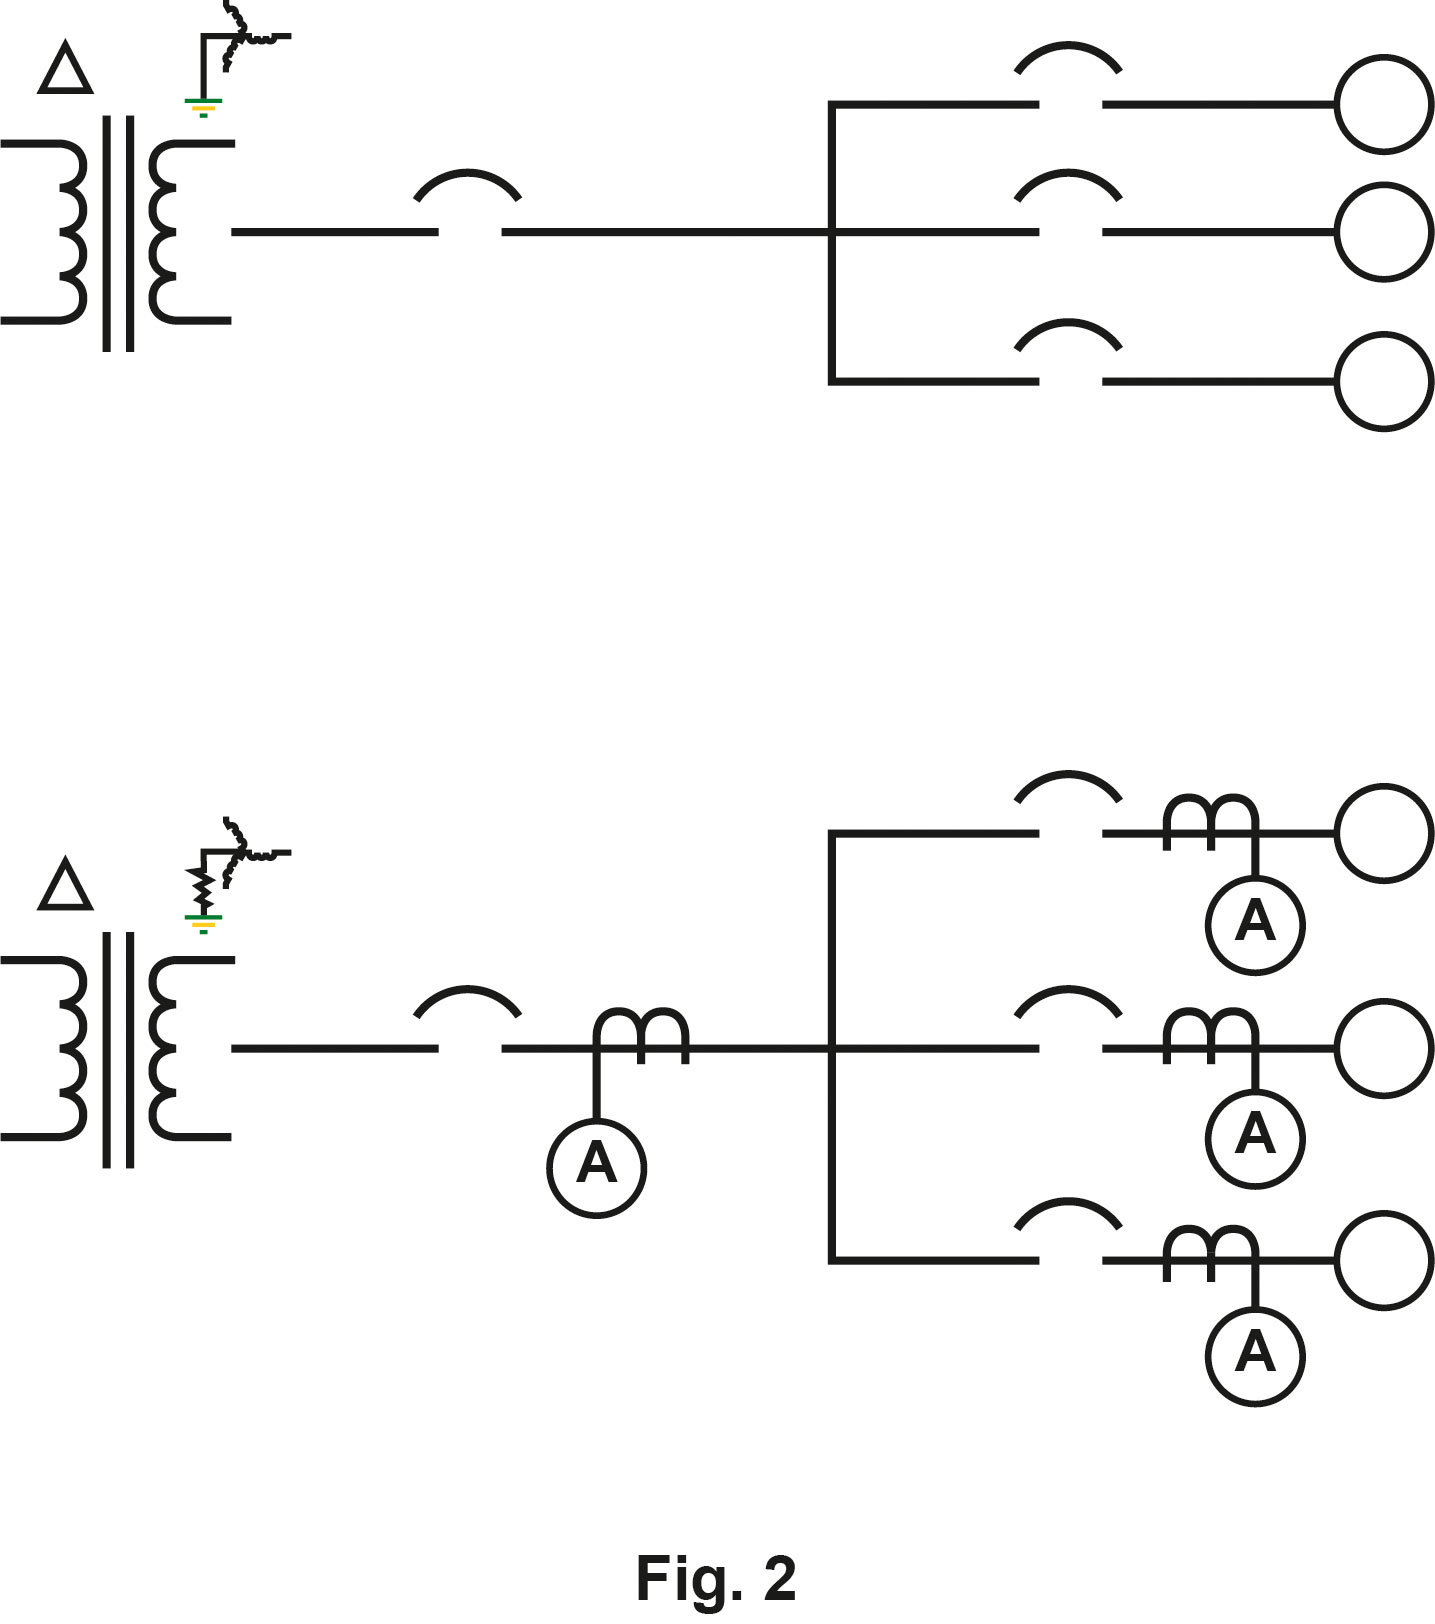 Conversion of a solidly grounded system into an HRG system